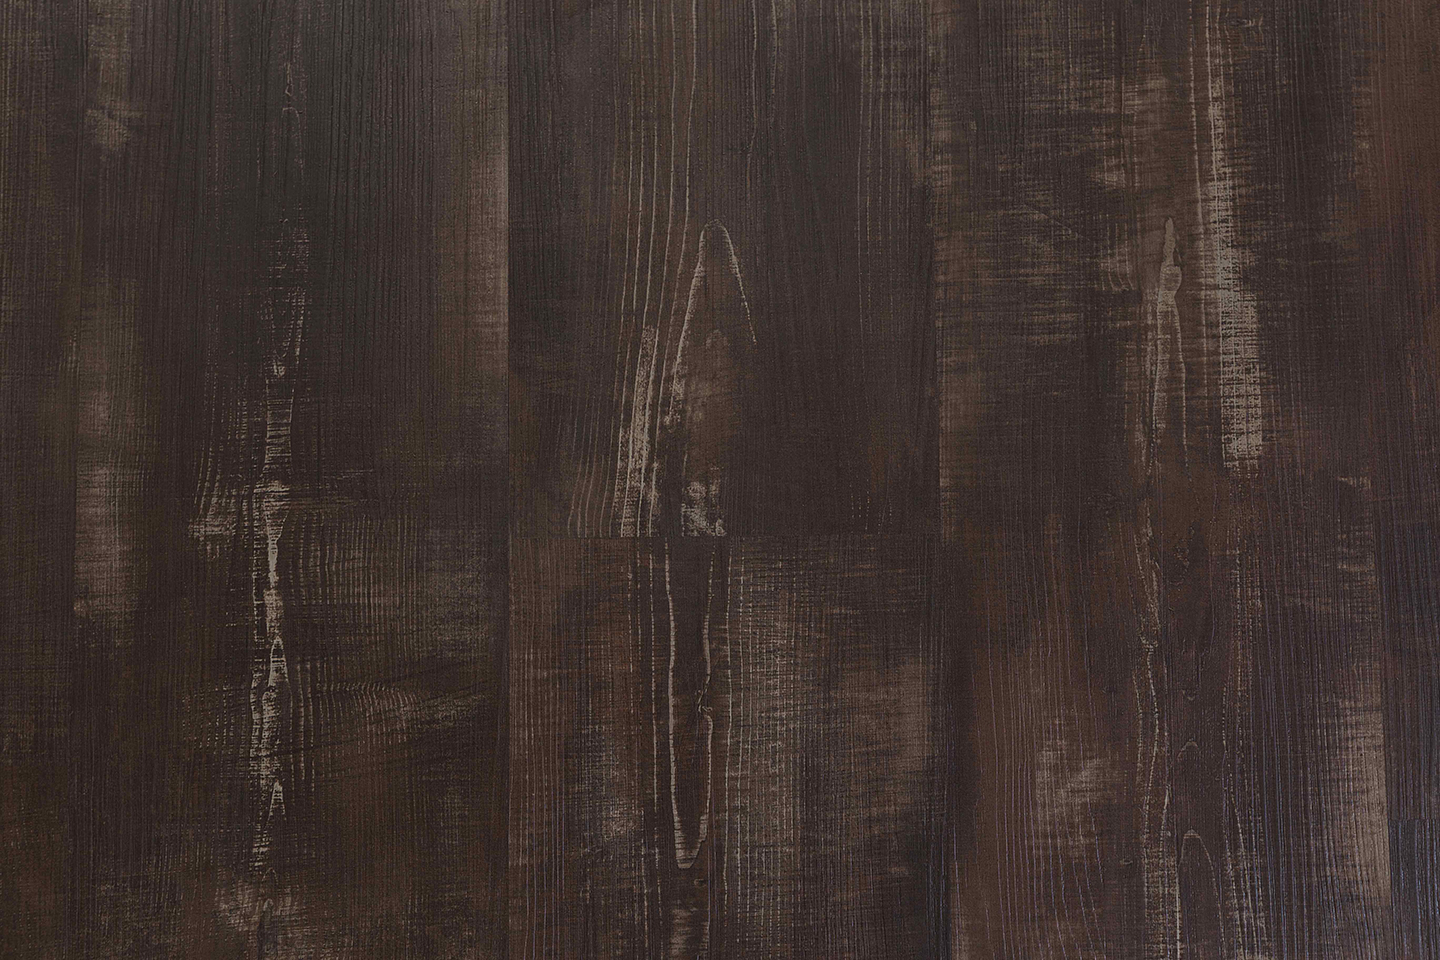 Vinylclick-weathered-brown_swatch